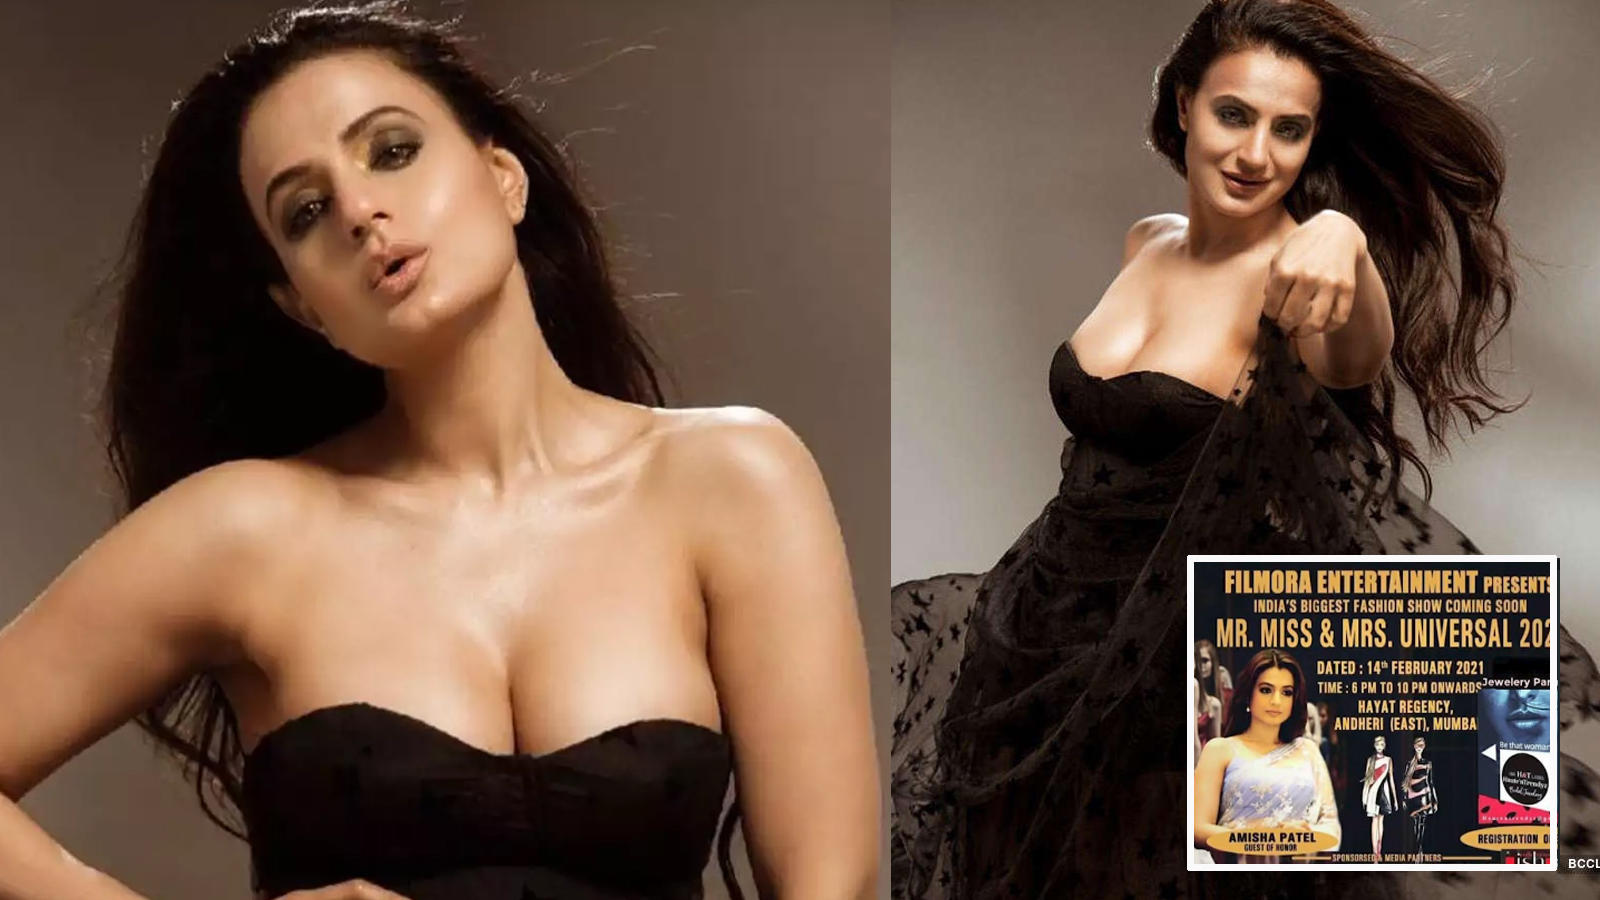 ameesha-patel-warns-fans-about-a-misleading-poster-going-viral-on-the-internet